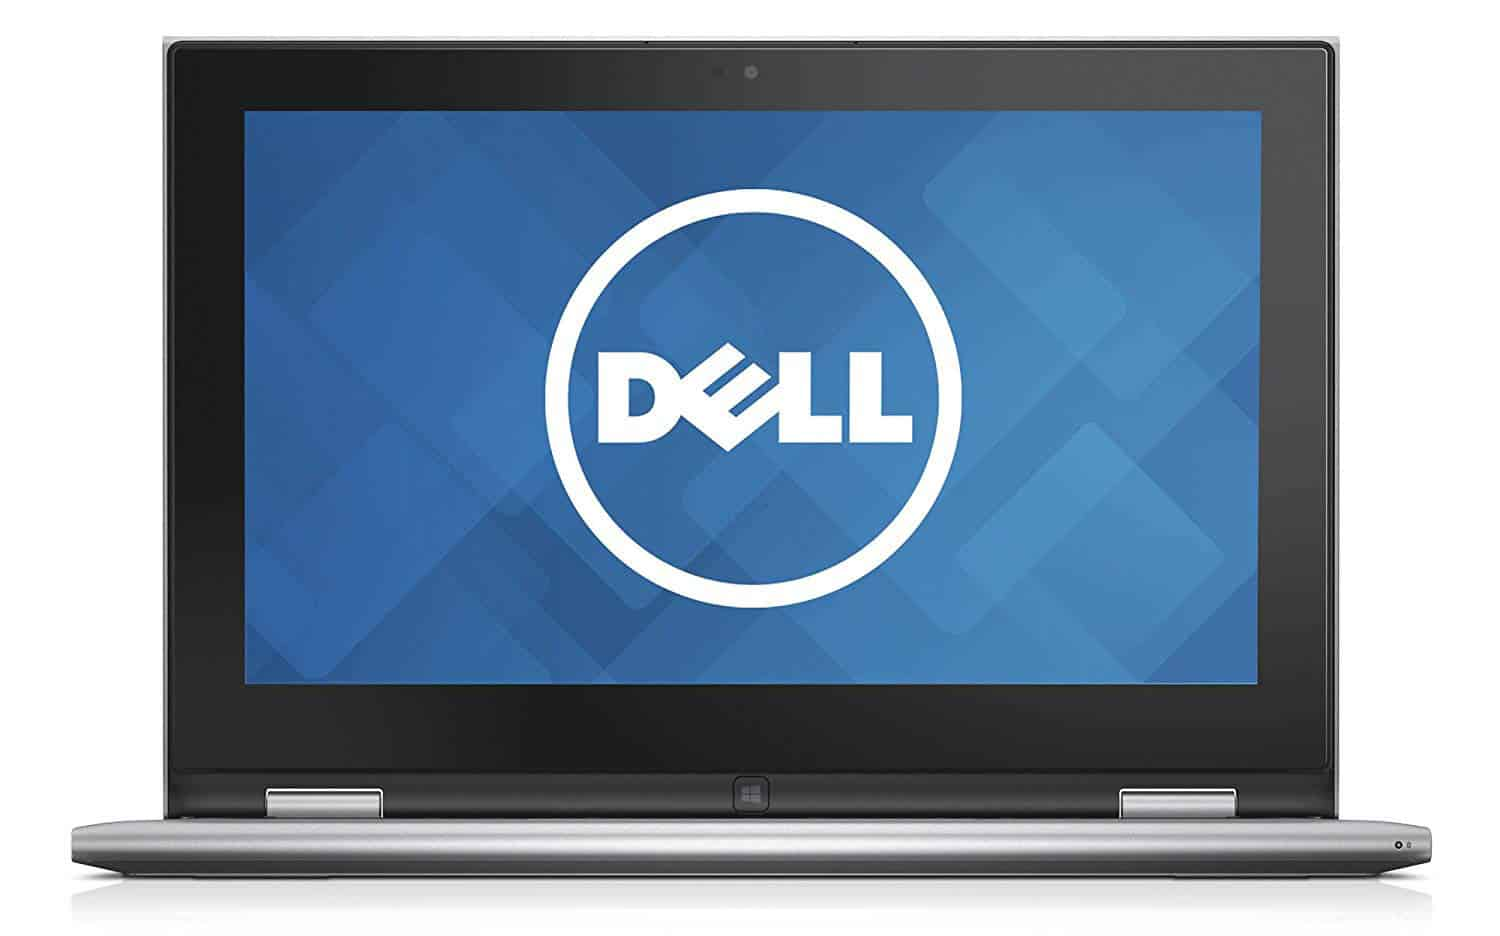 Dell Inspiron 11 3000 Review